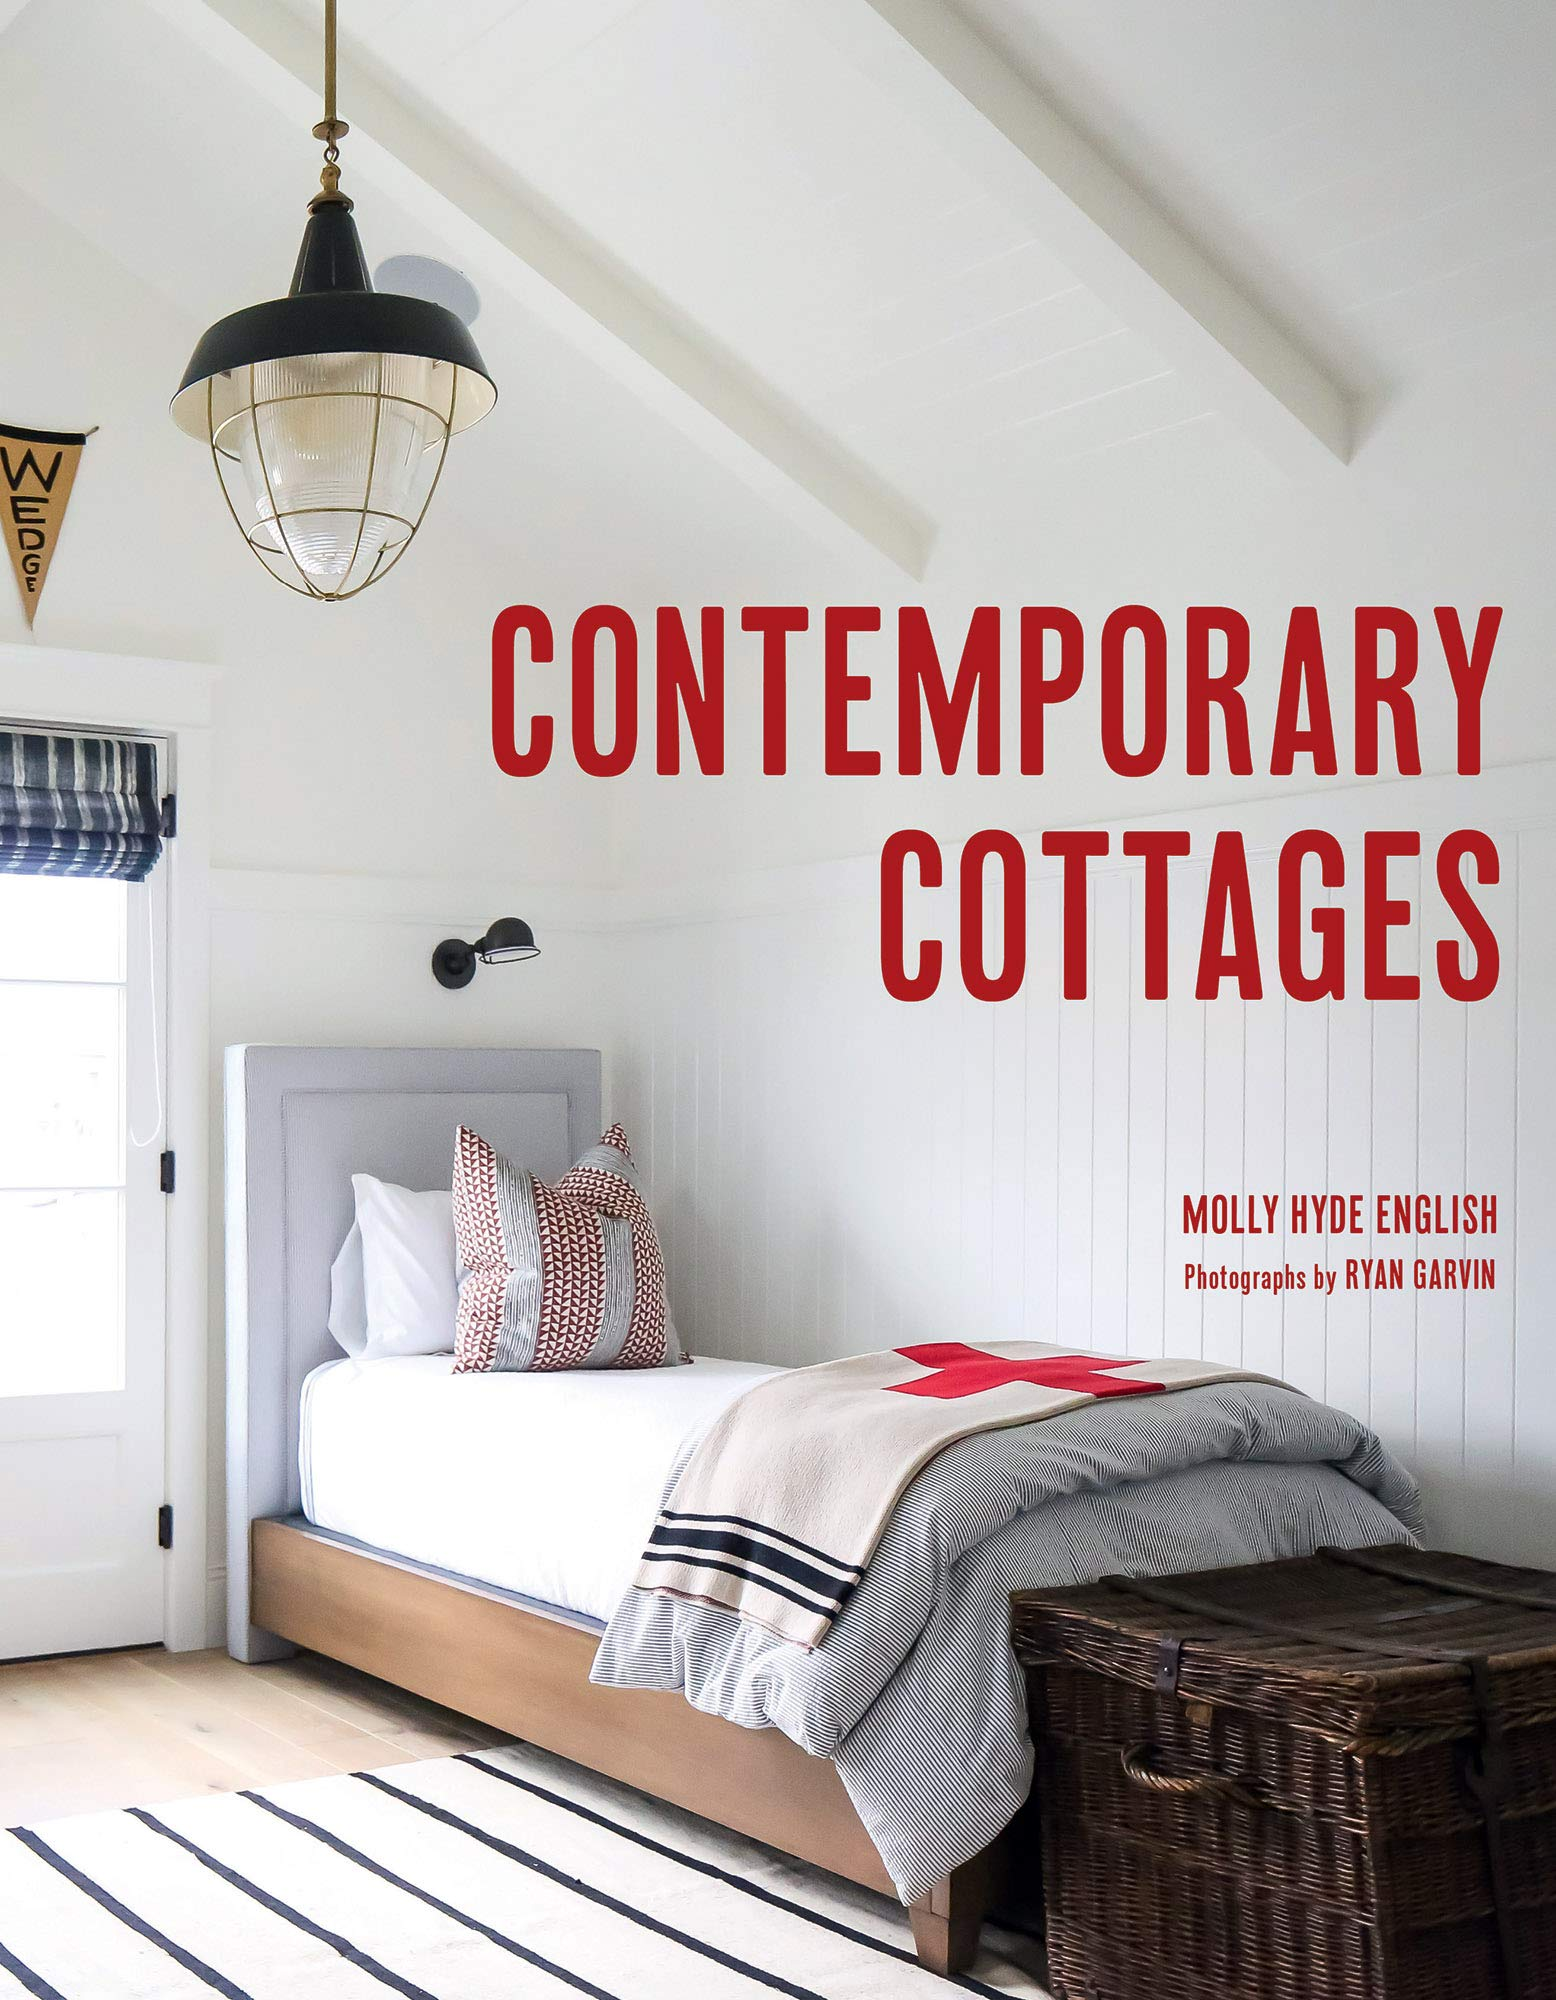 $23.33 •  Contemporary Cottages By: Molly Hyde English